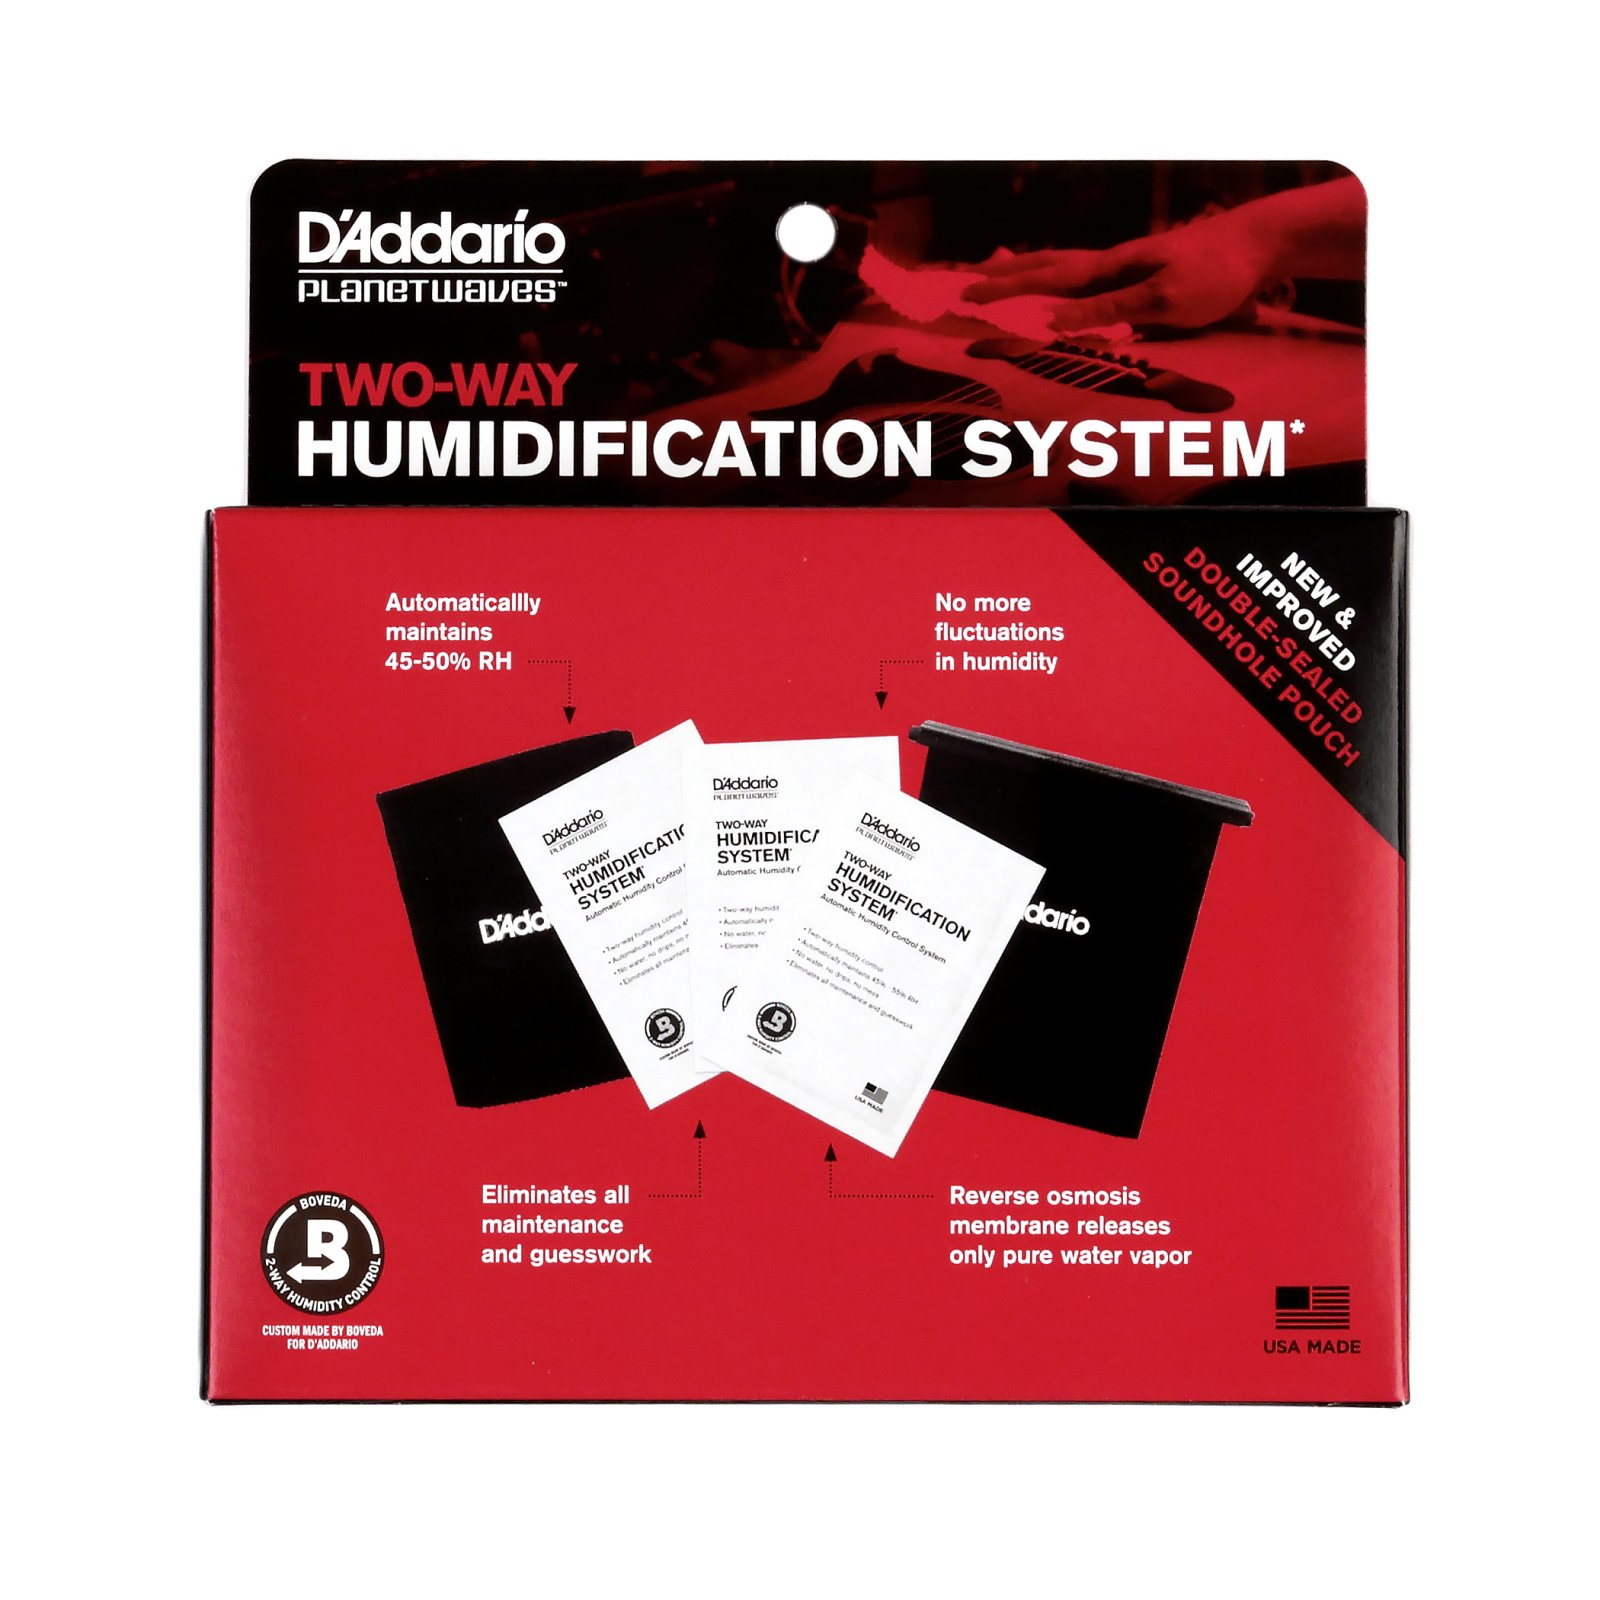 D'Addario / Planet Waves Two-Way Humidification System (PW-HPK-01)